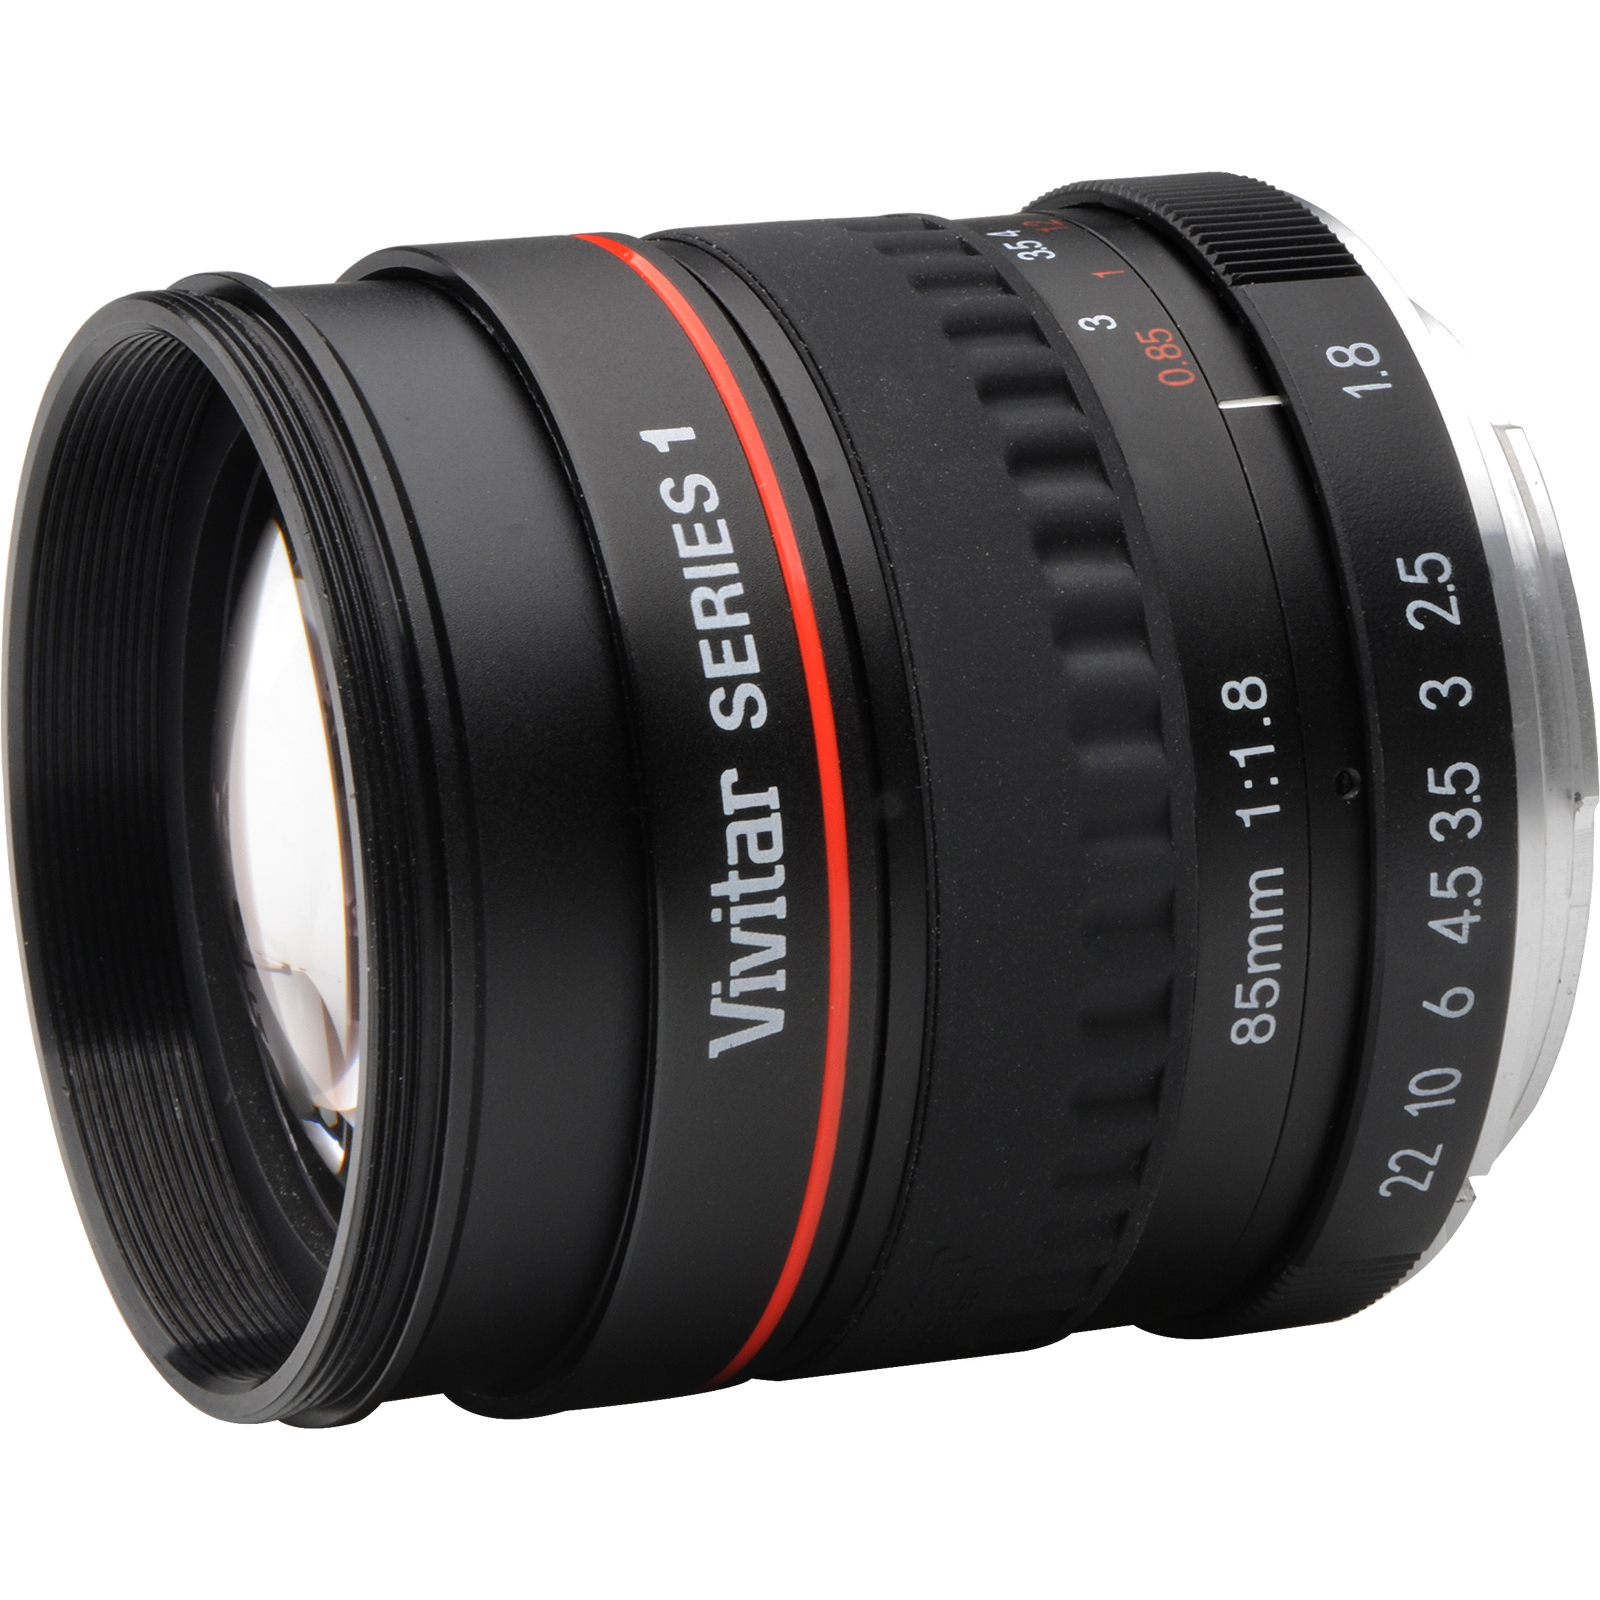 Vivitar 85mm f/1.8 Portrait Lens (for Canon EOS Cameras)